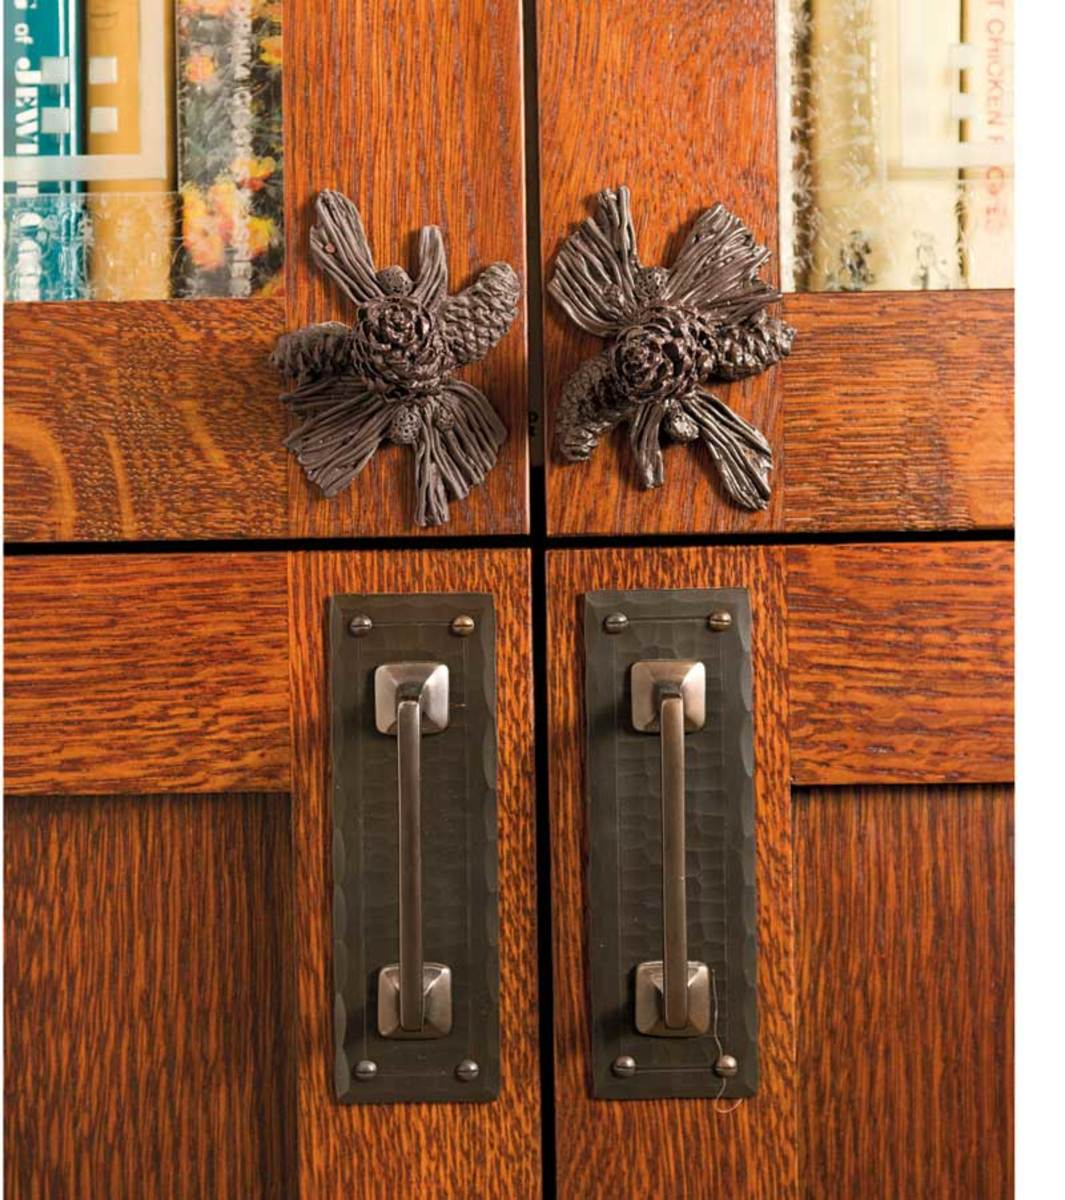 Pinecone pulls from Craftsmen Hardware in a revival kitchen.